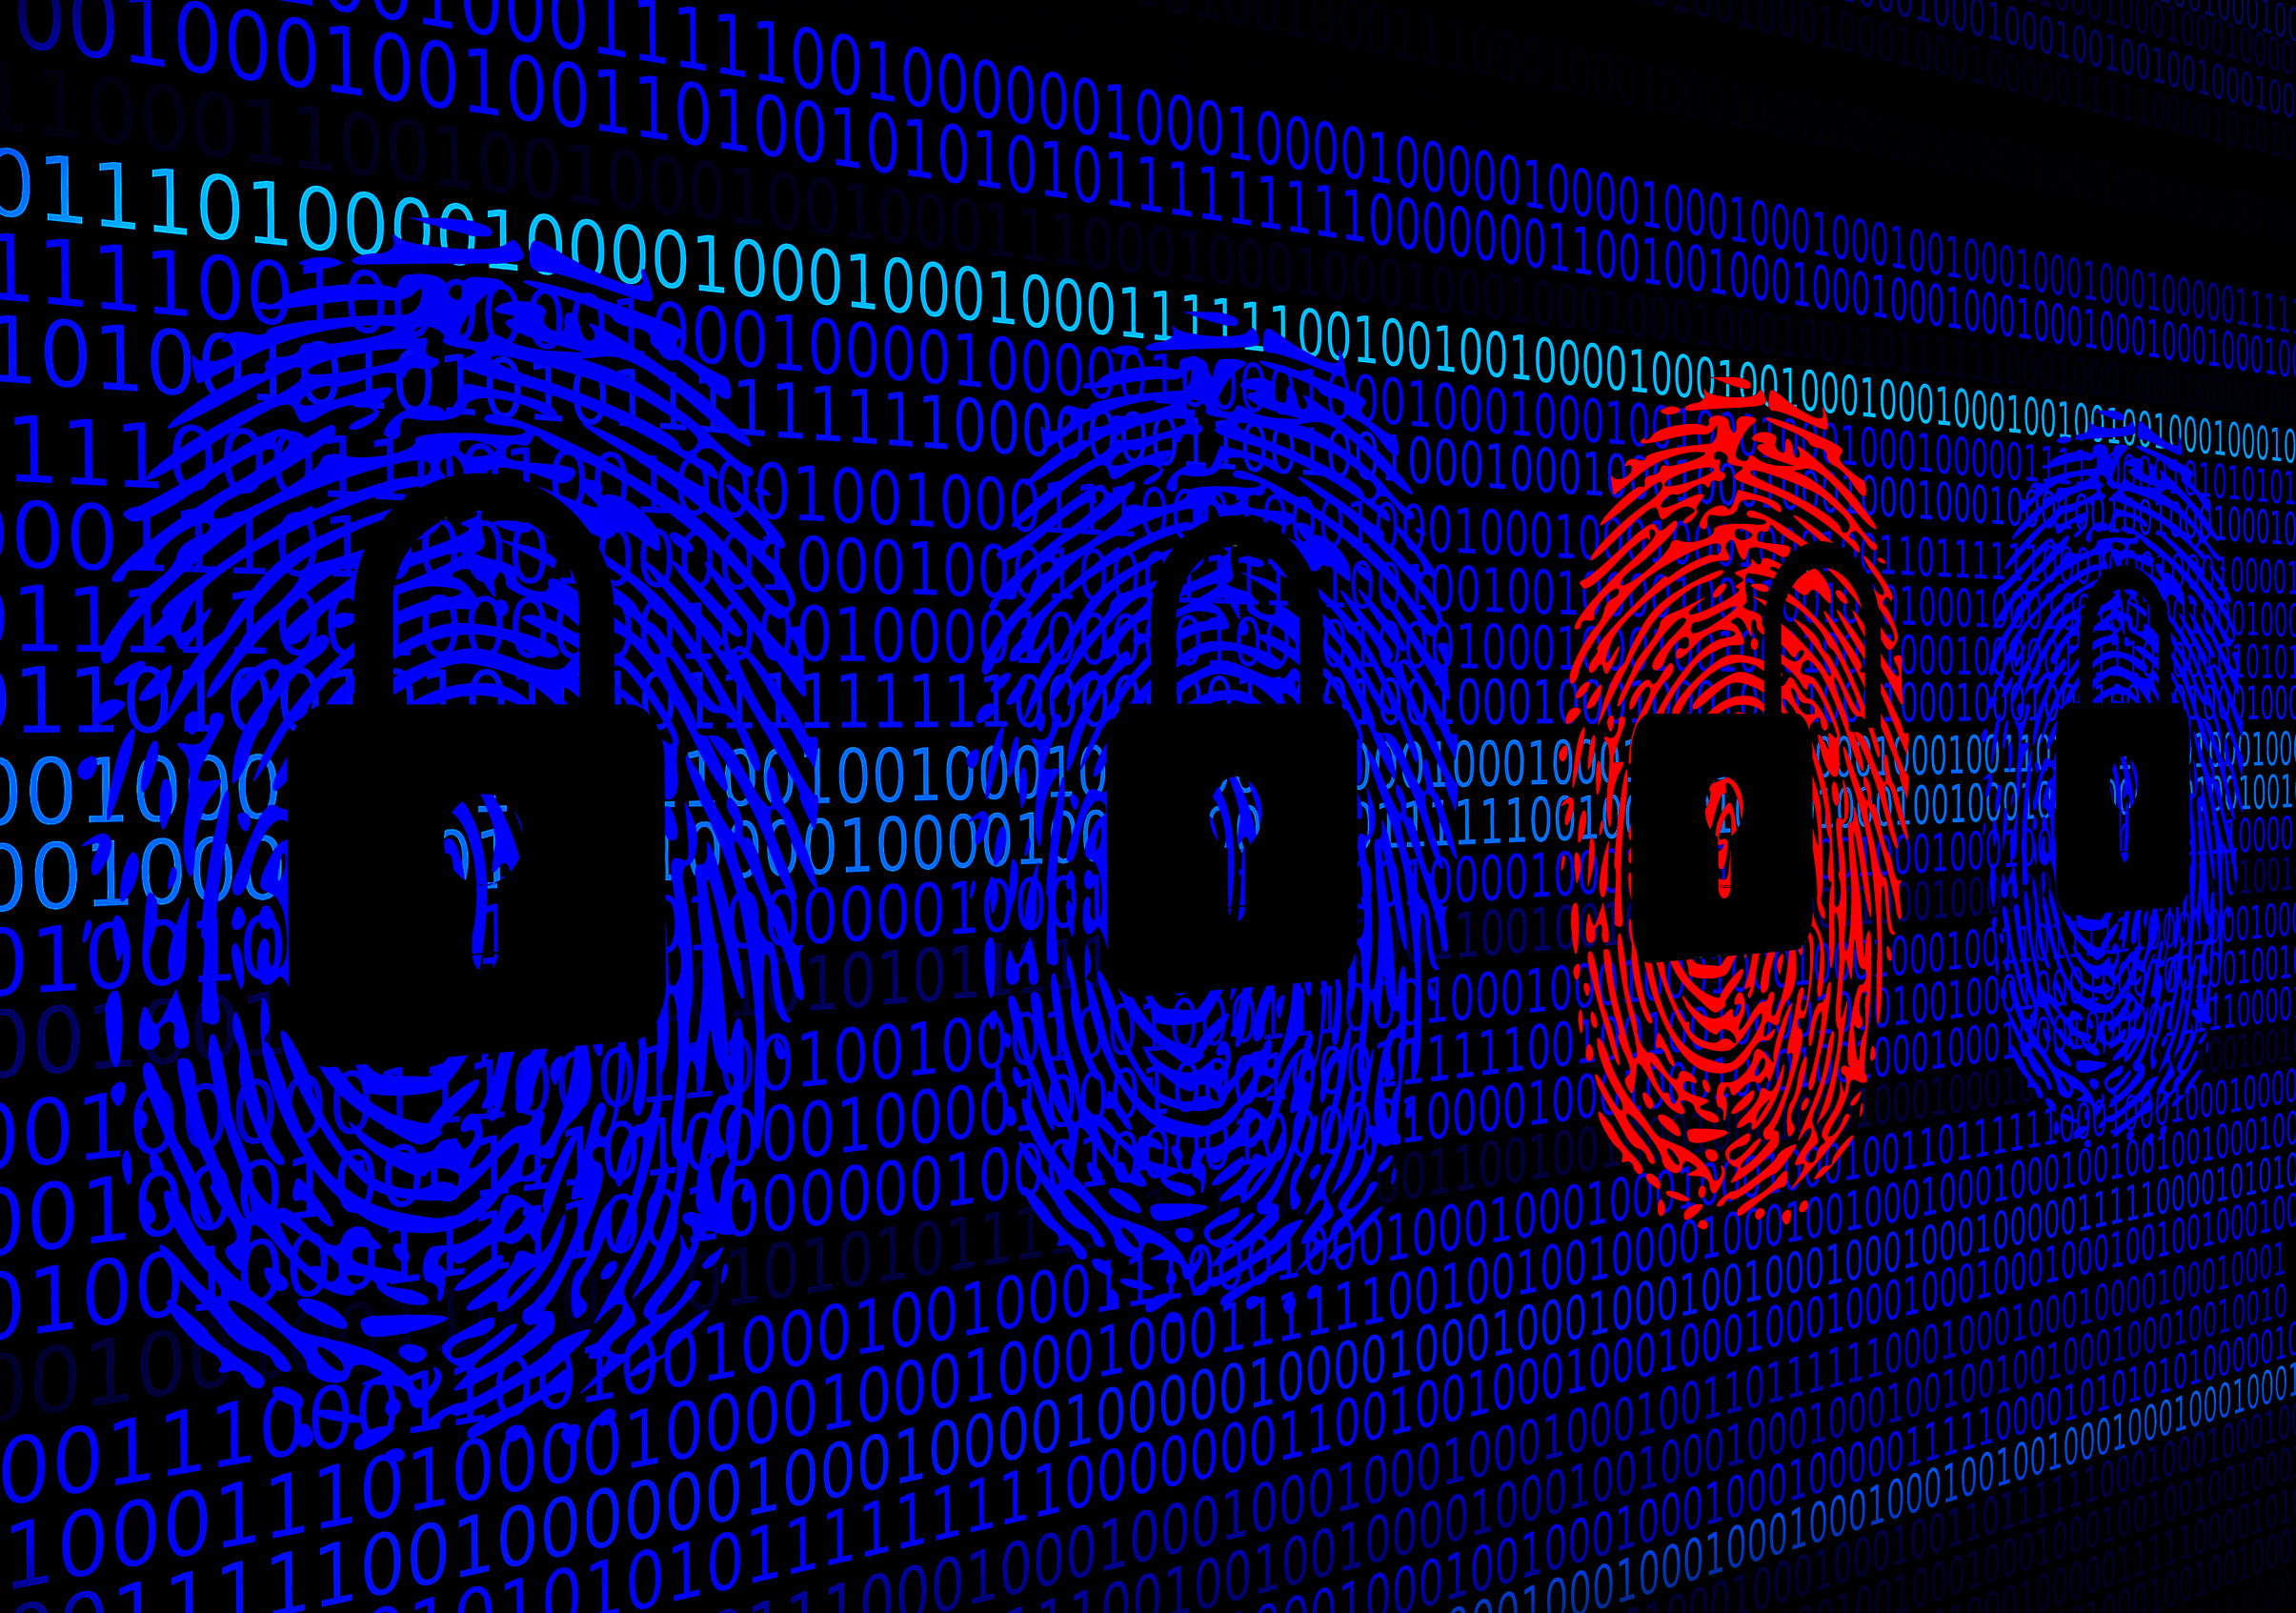 MS in Cybersecurity, is this a good path?